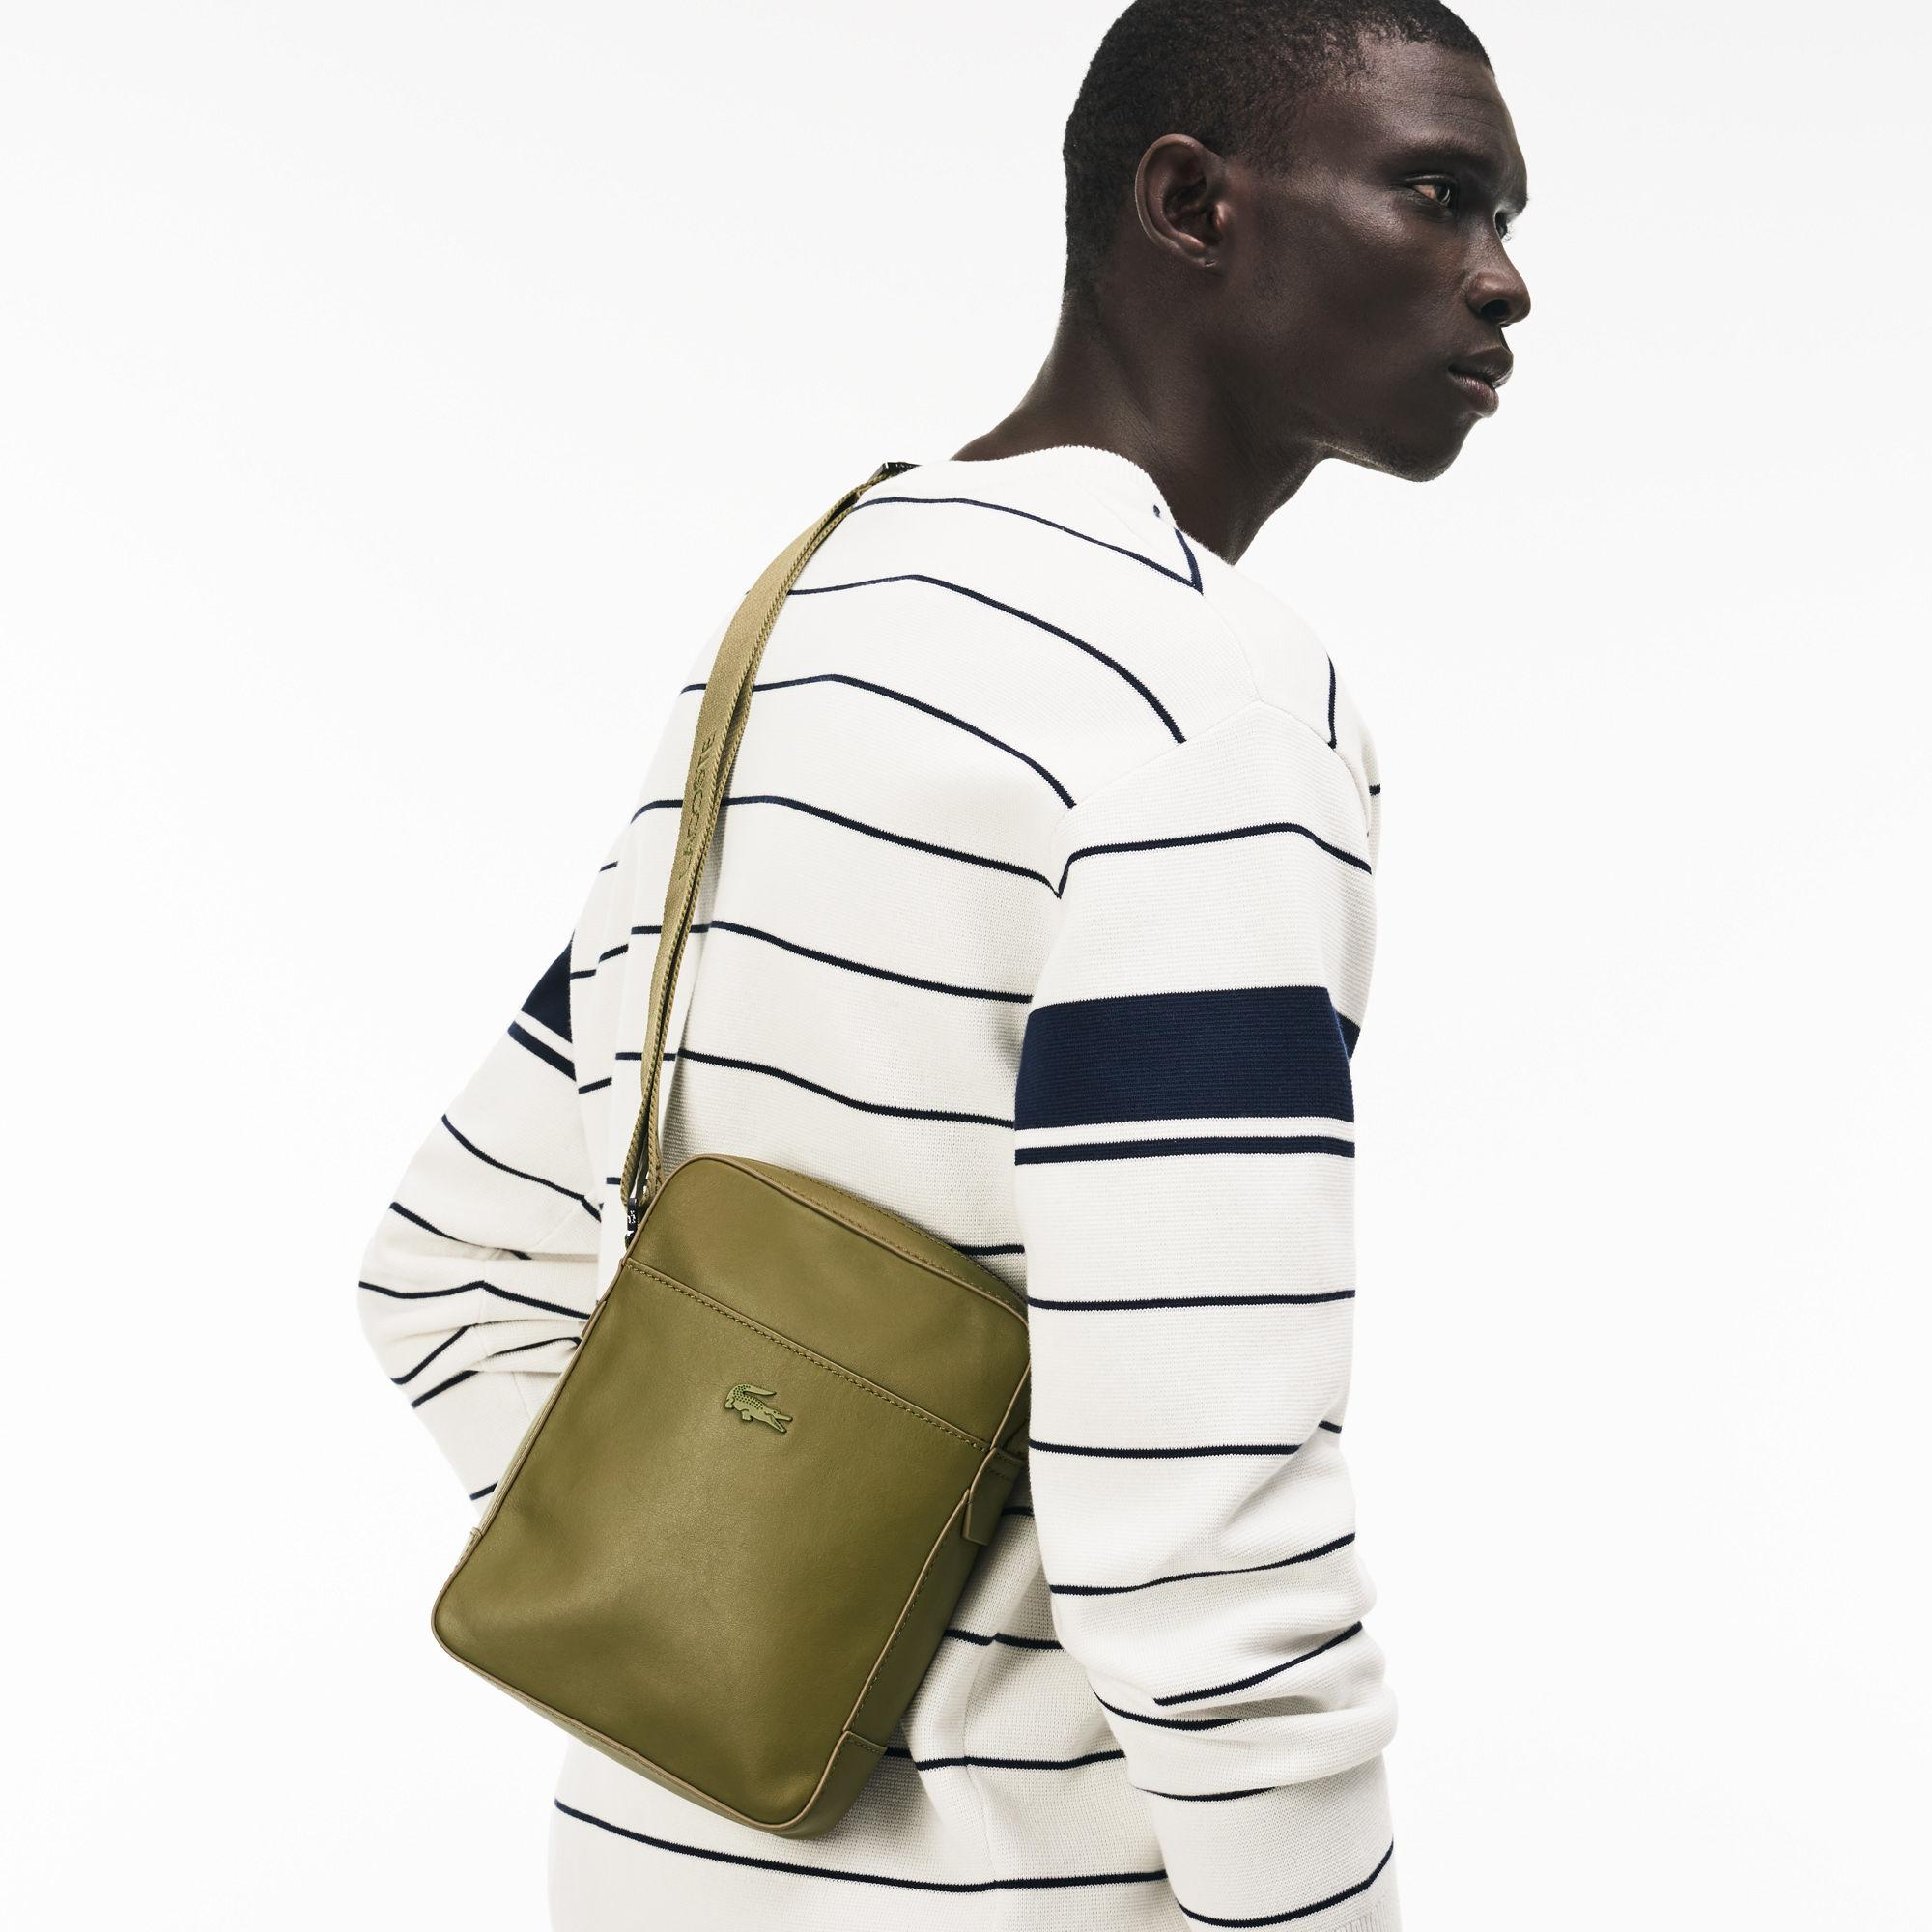 8f834edc77b8ca Lyst - Lacoste Full Ace Soft Leather Bag in Green for Men